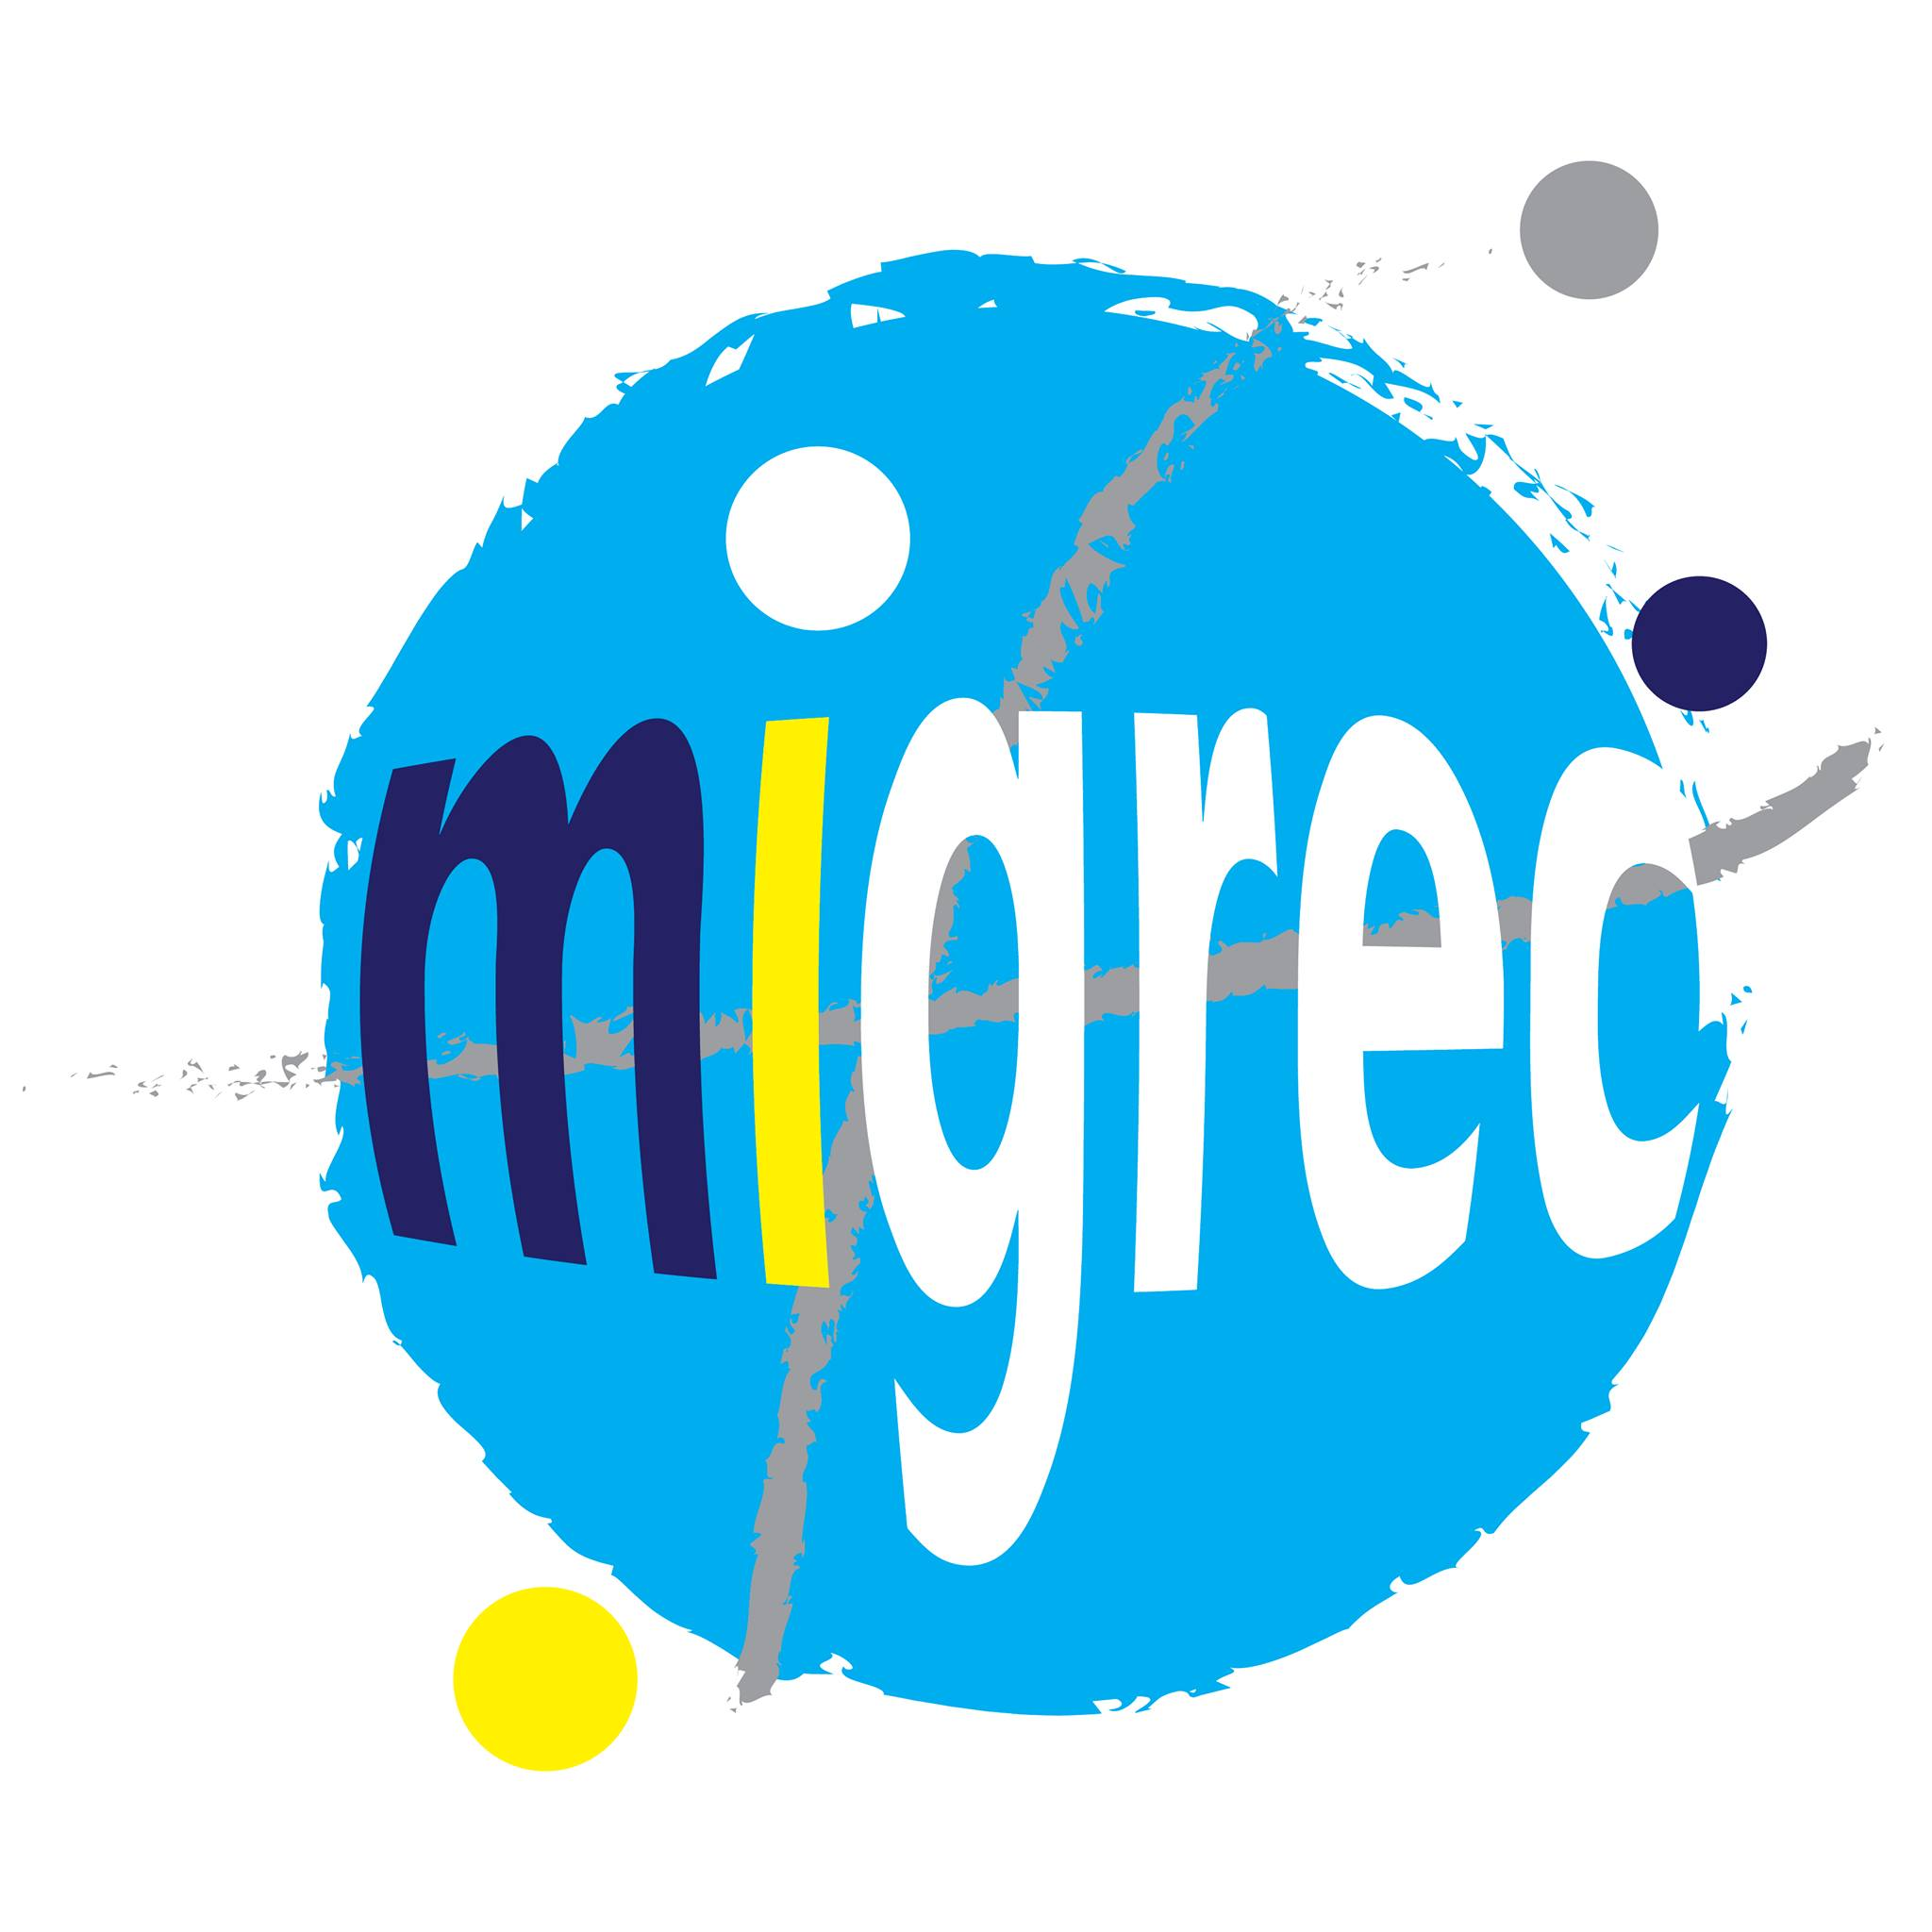 MIGREC project – Newsletter #3